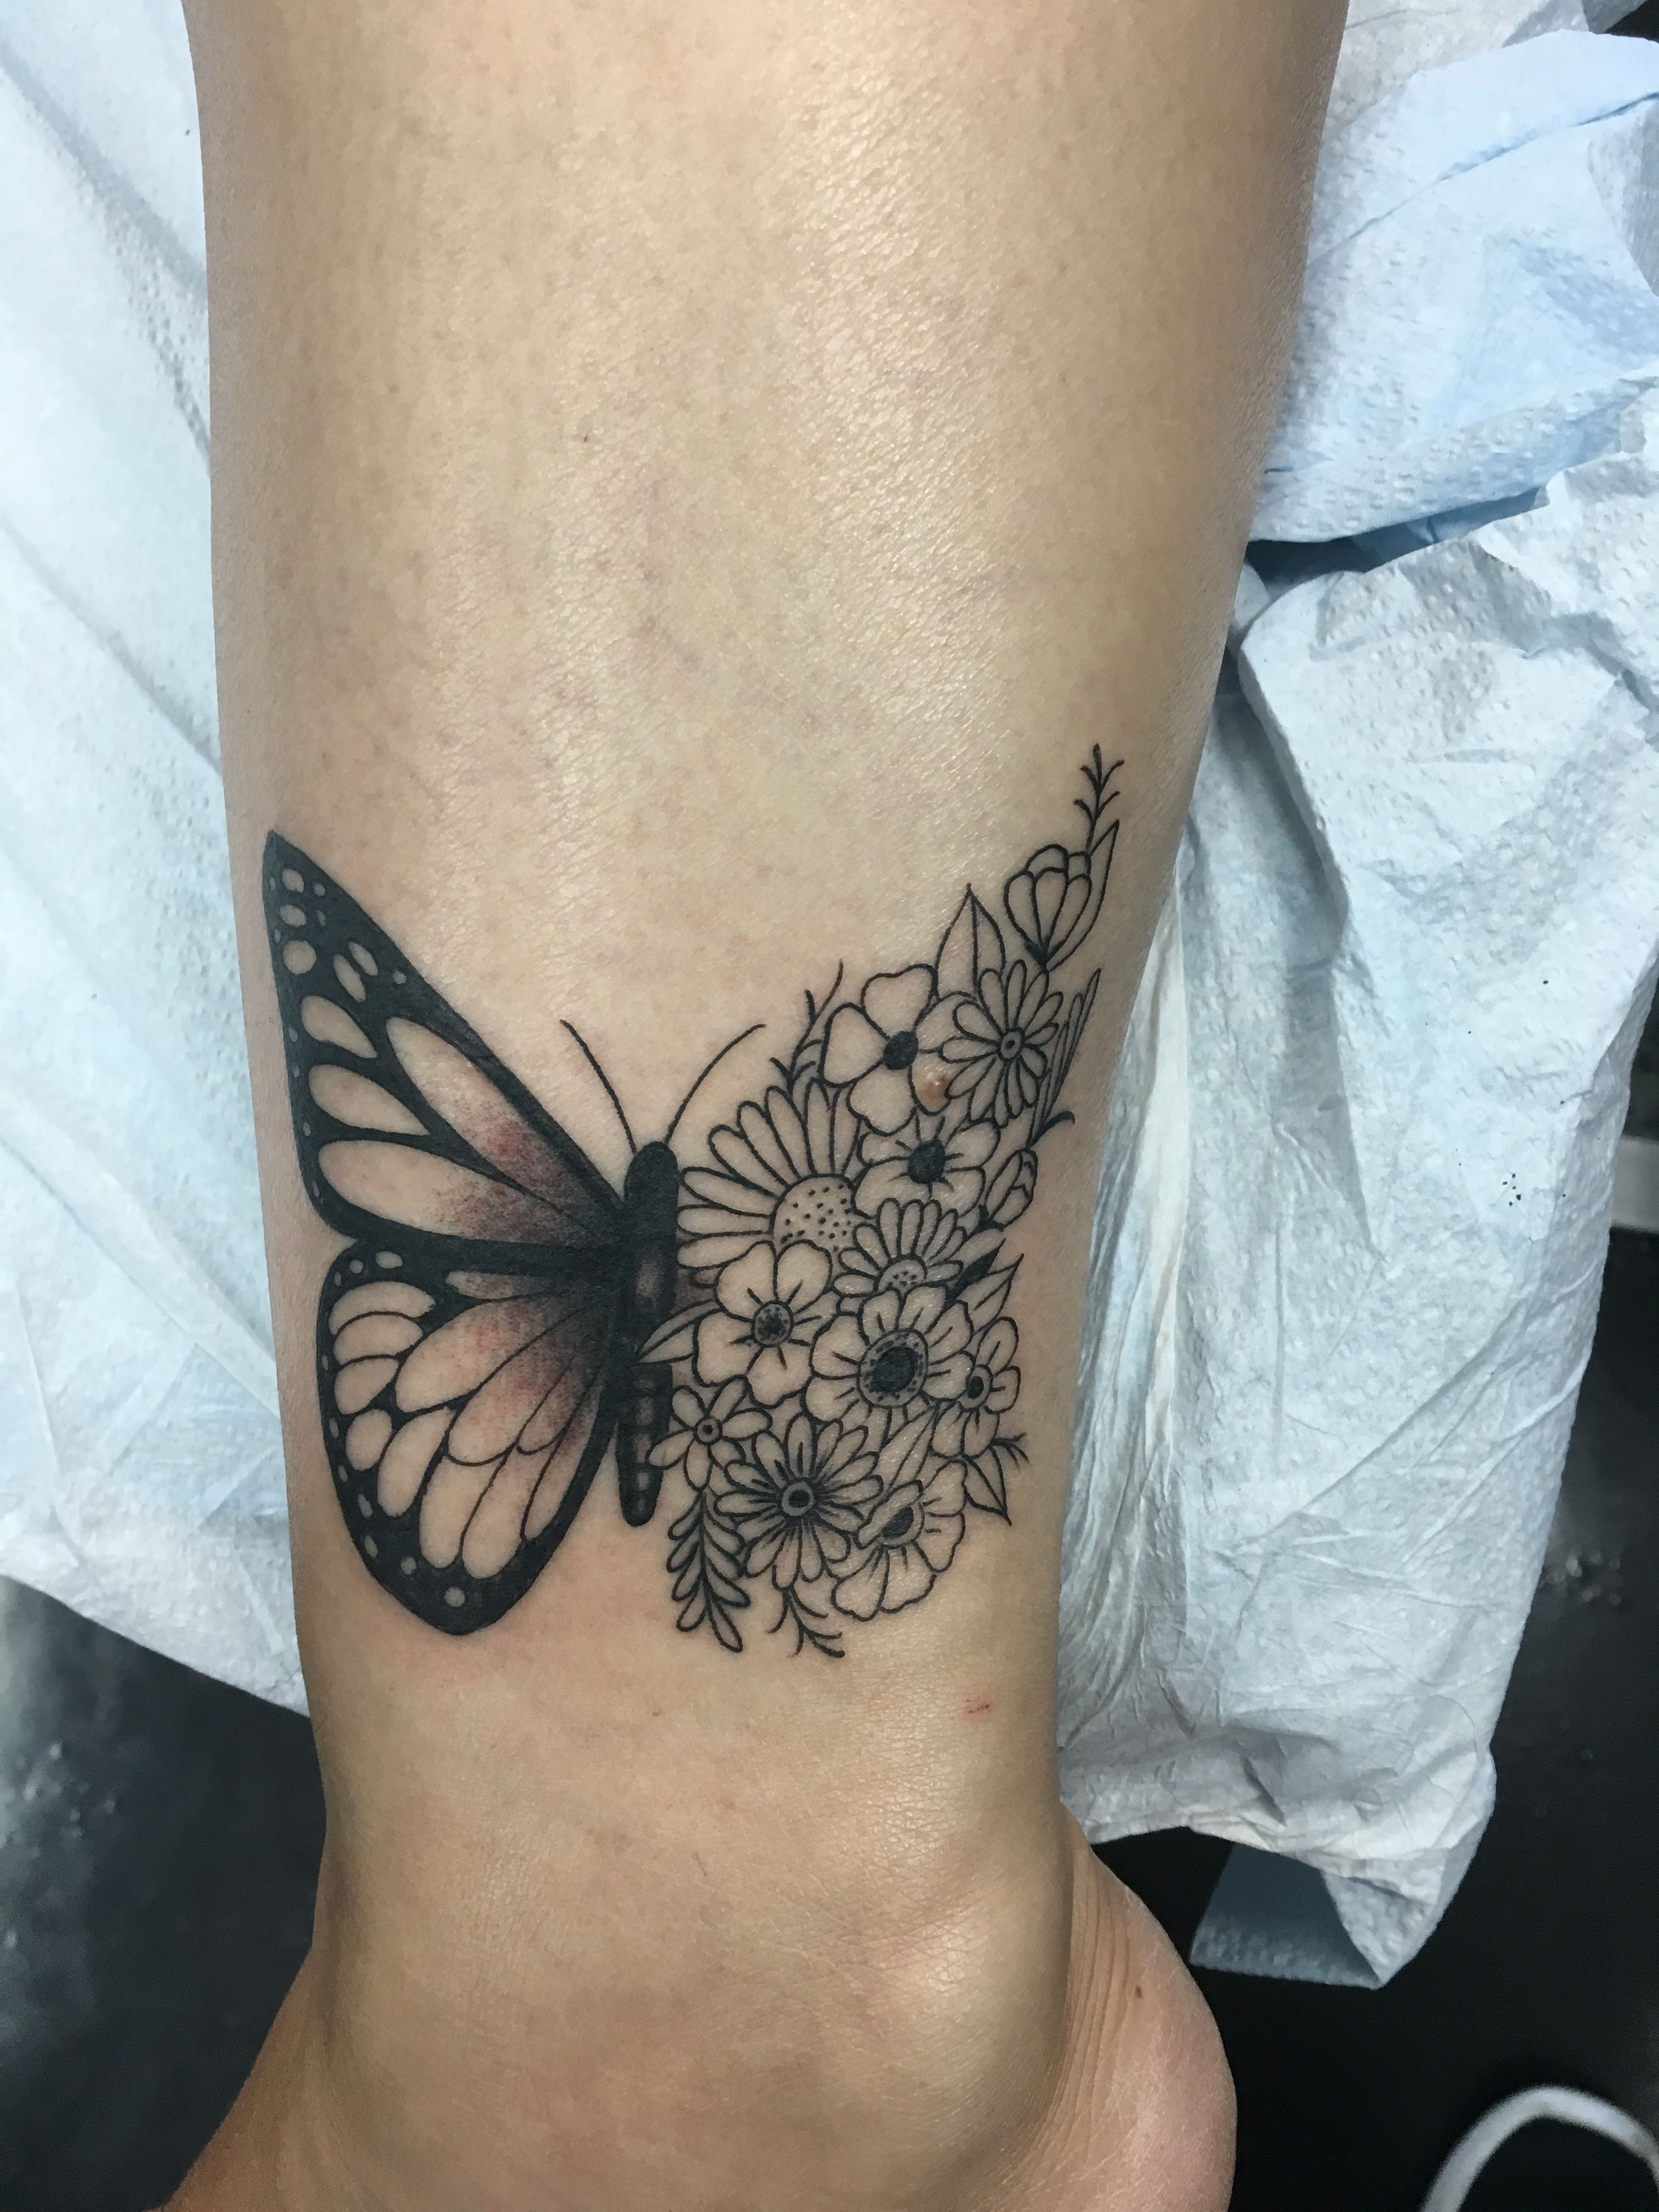 Love My New Butterfly Flower Tattoo Looks Perfect On My Ankle Cute Ankle Tattoos Butterfly With Flowers Tattoo Butterfly Tattoo